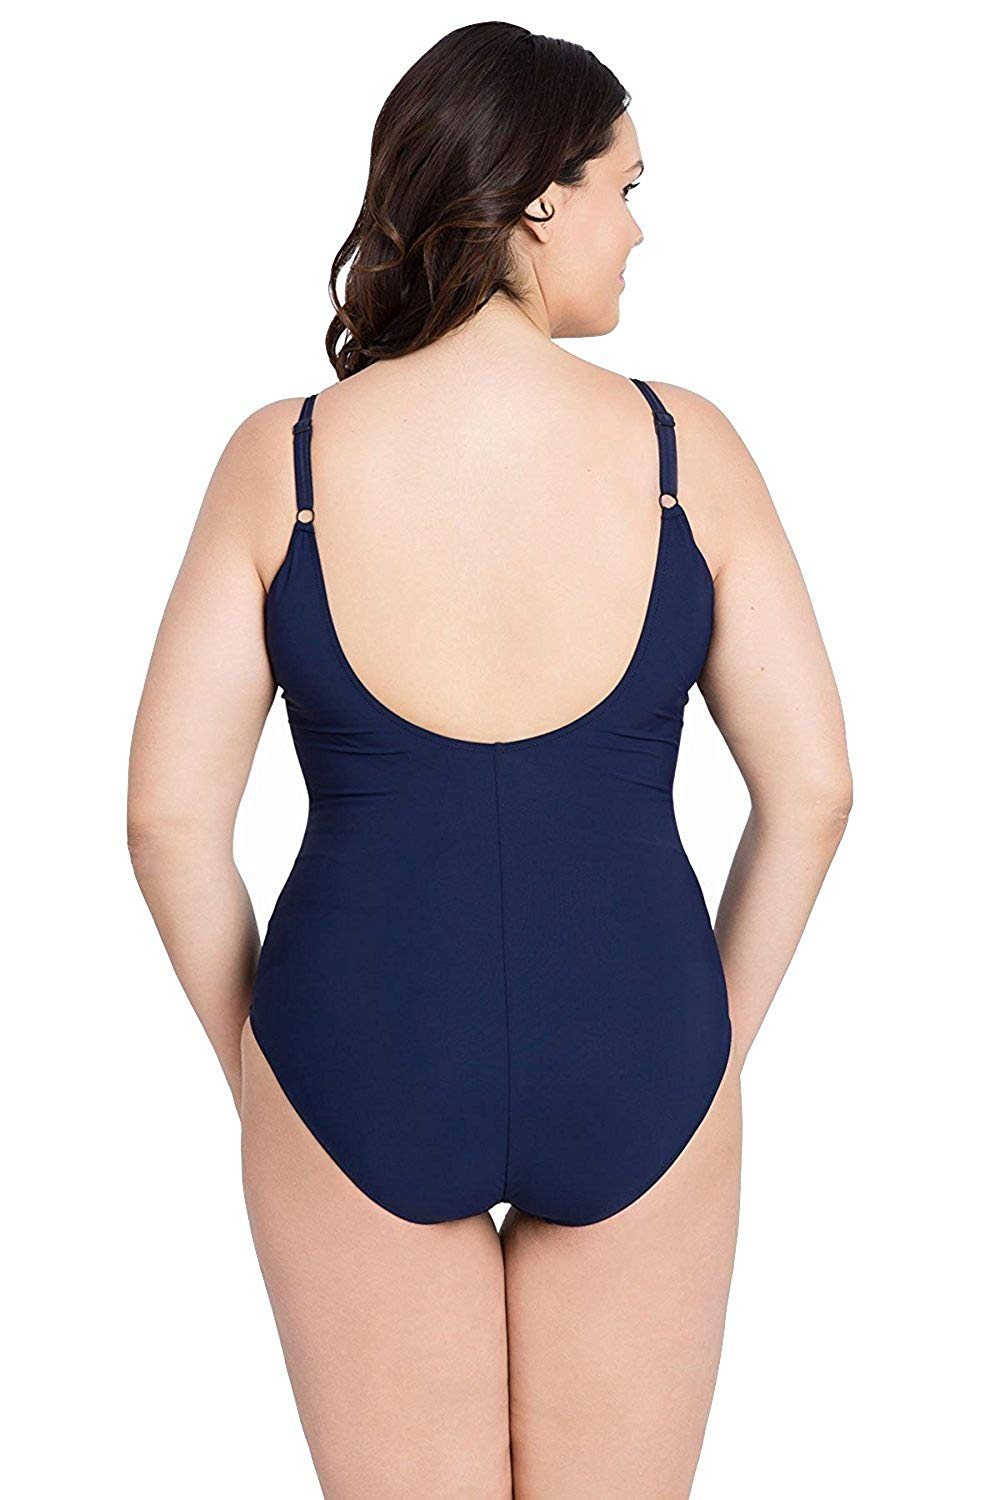 9a5eed7eeb0f9 ... Profile by Gottex Blue Lagoon Plus Size One Piece Tank Swimsuit -  forENVY